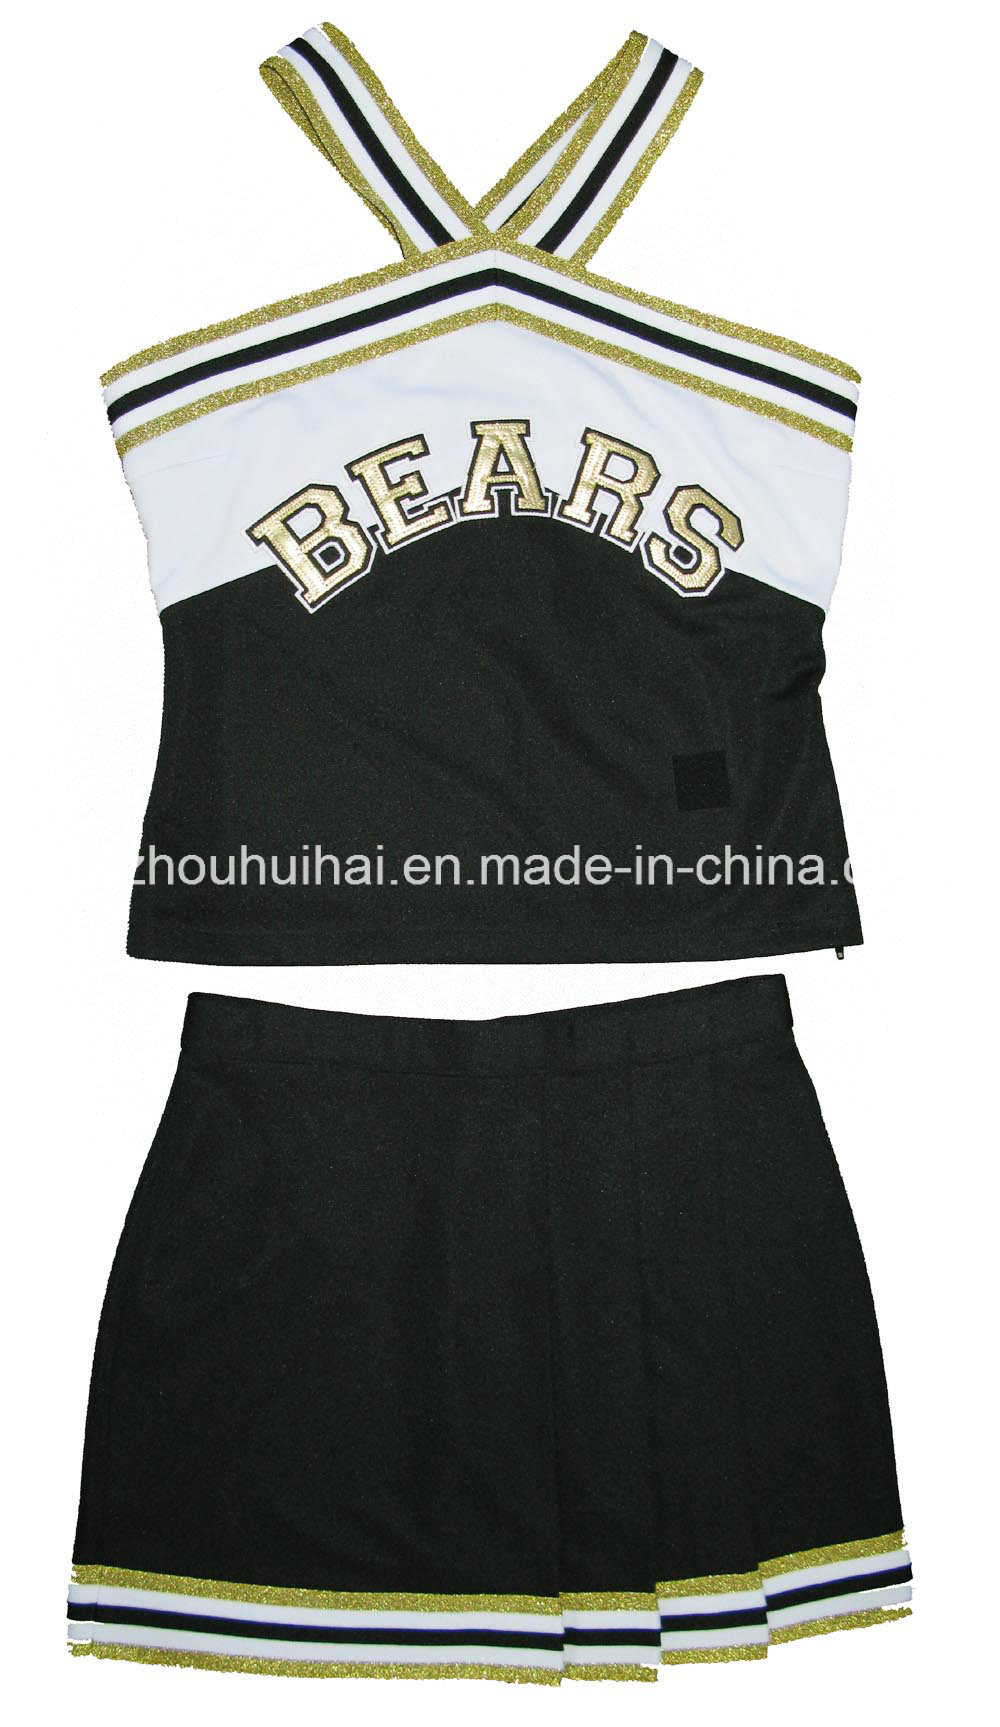 2016 Cheerleading Uniform: Shell Top and Skirt